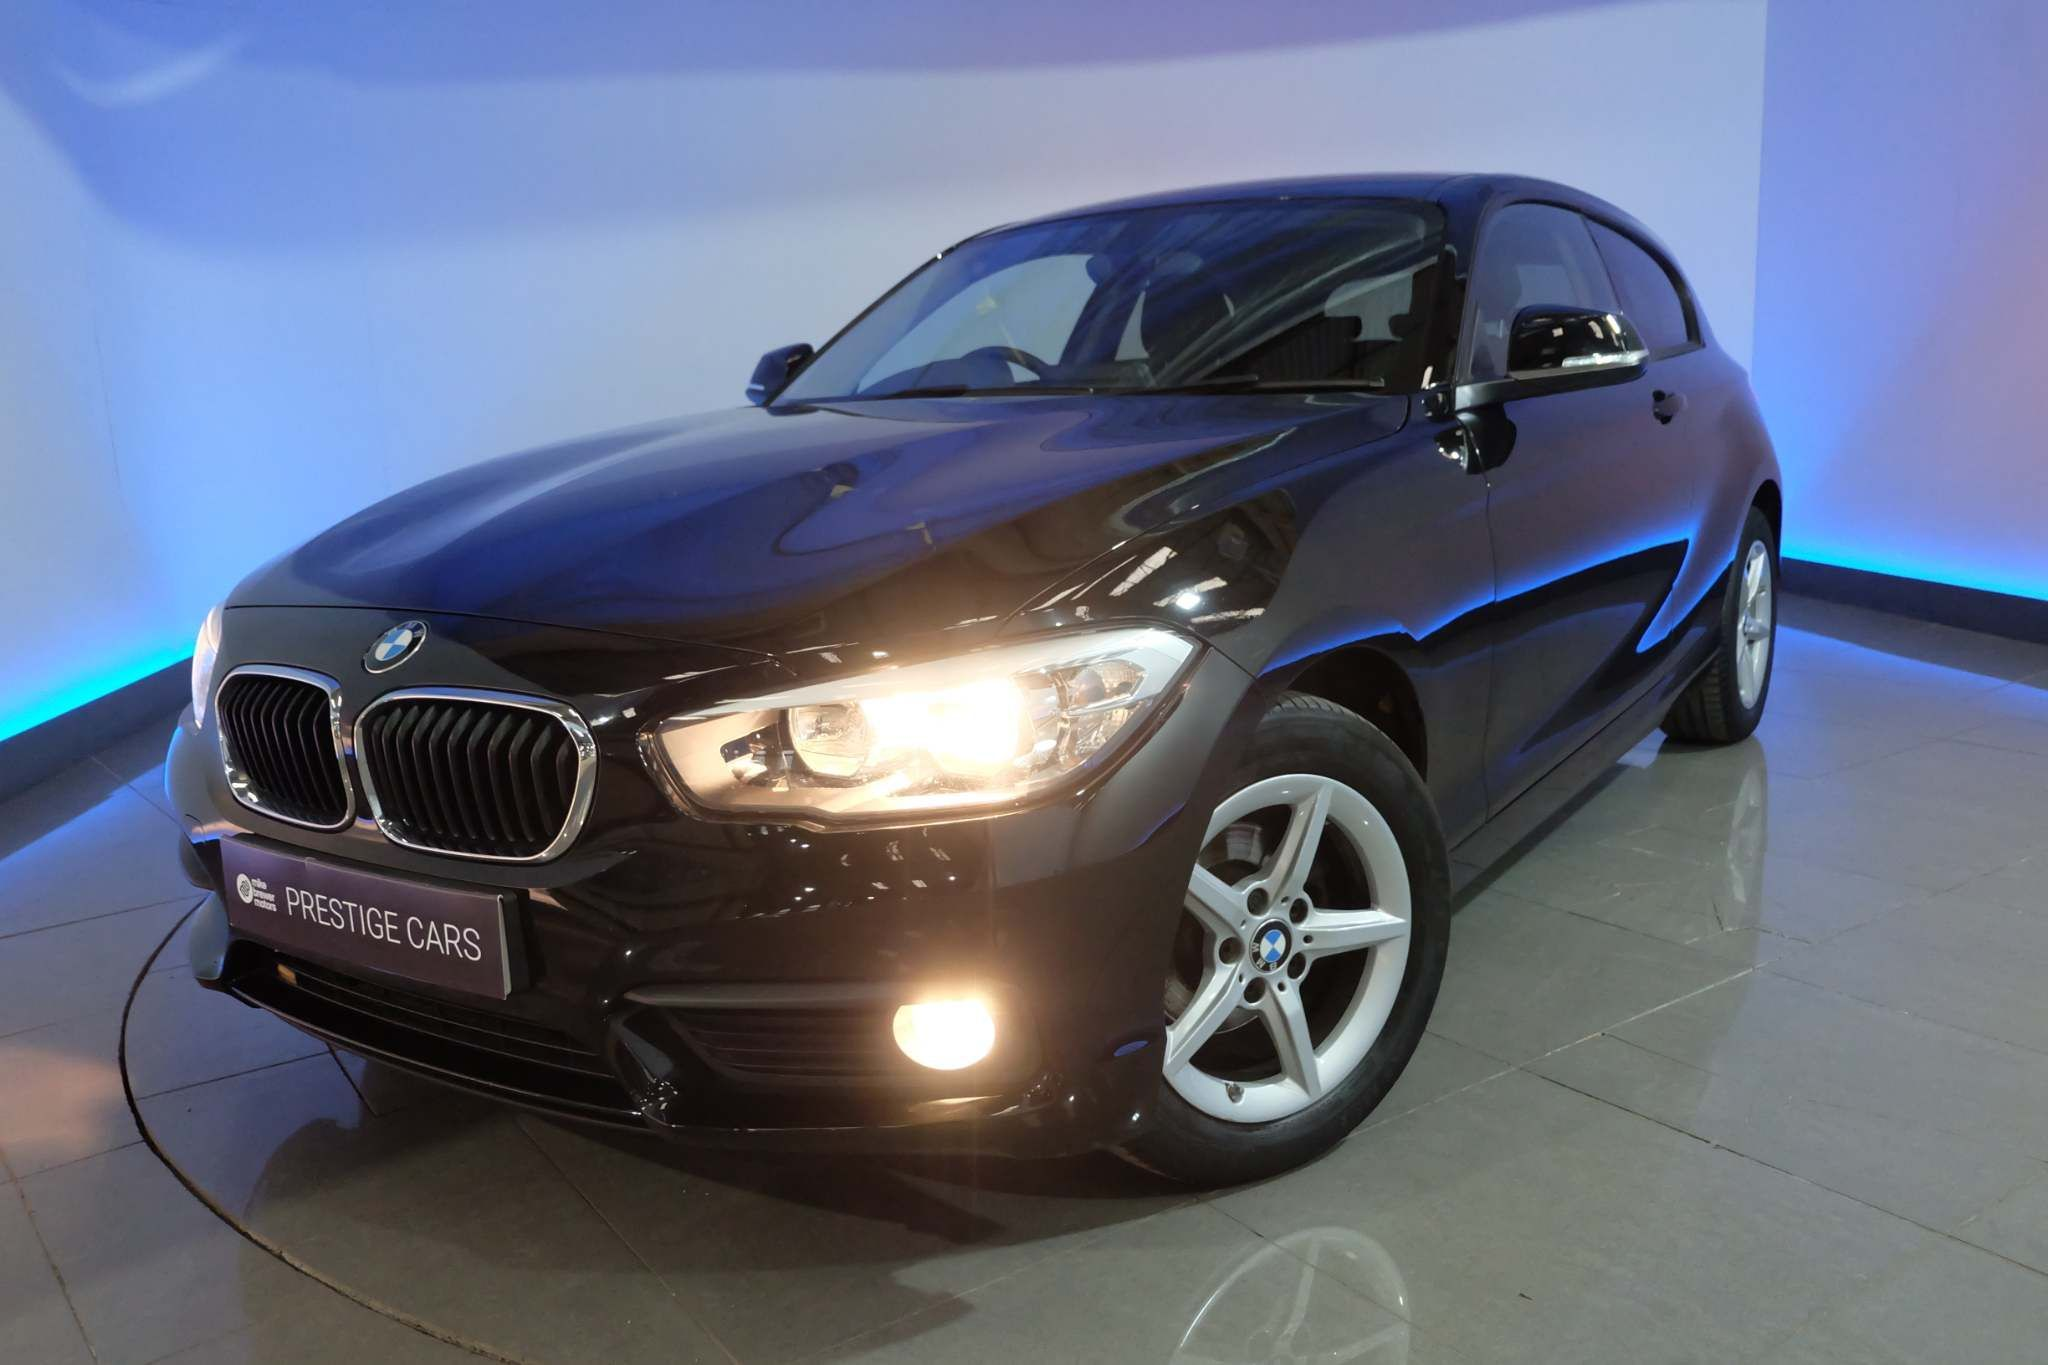 Used BMW 1 Series 1.5 118i Se Sports Hatch Auto (s/s) 3dr